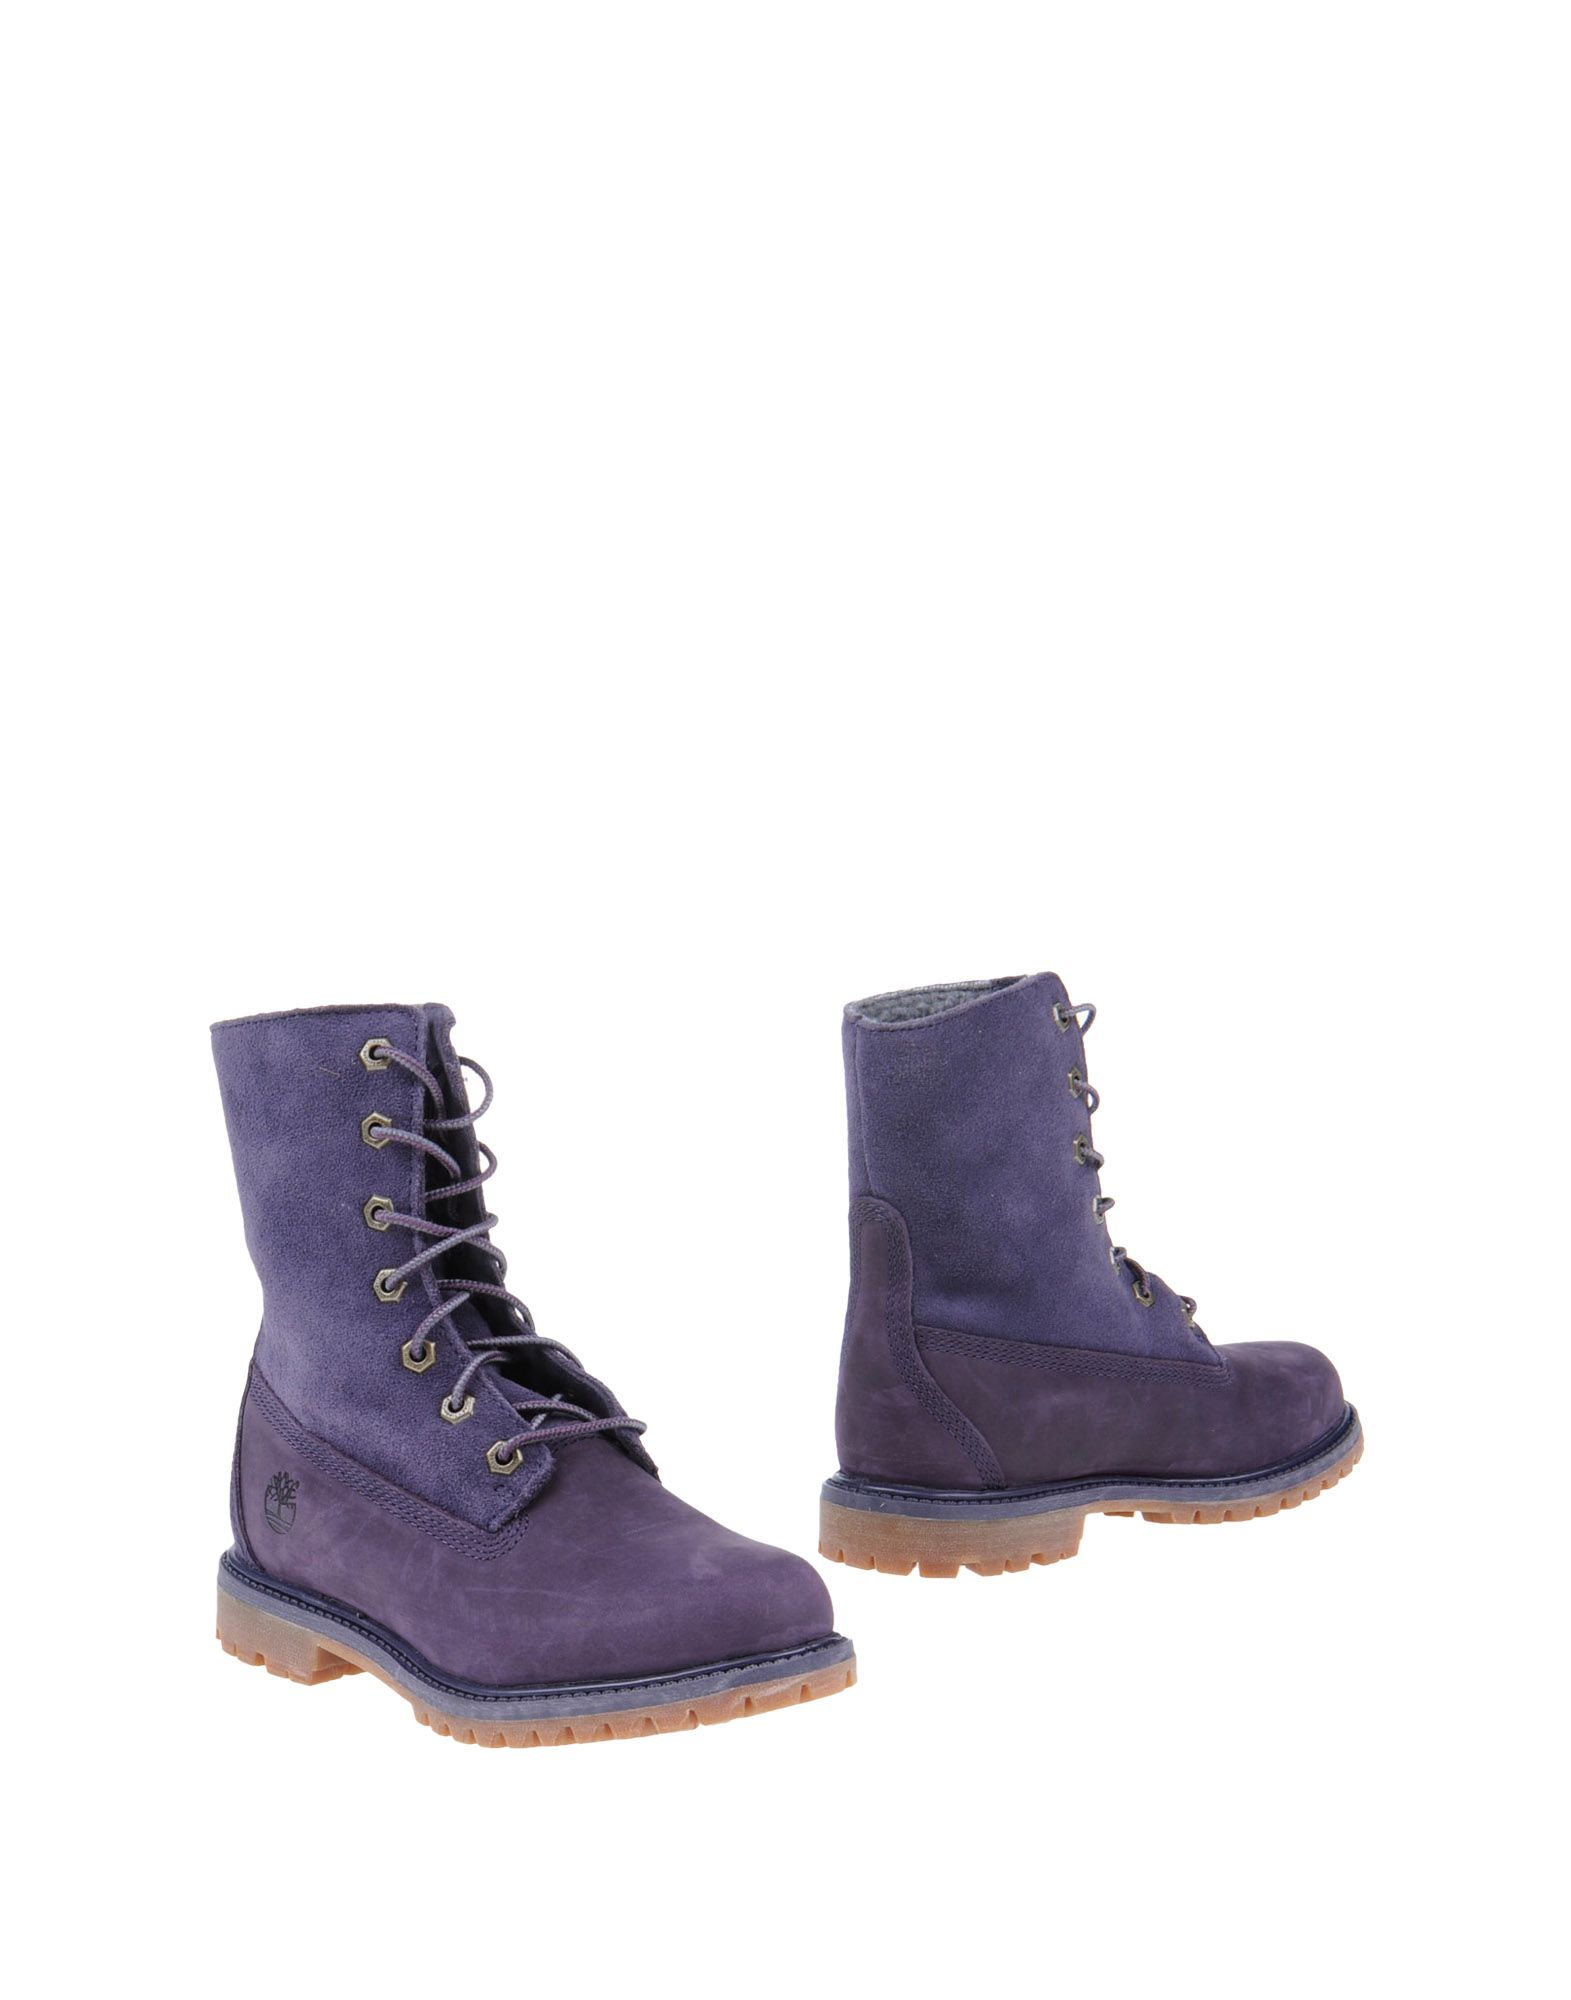 Unique Villa X Timberland Purple Diamond  The Awesomer